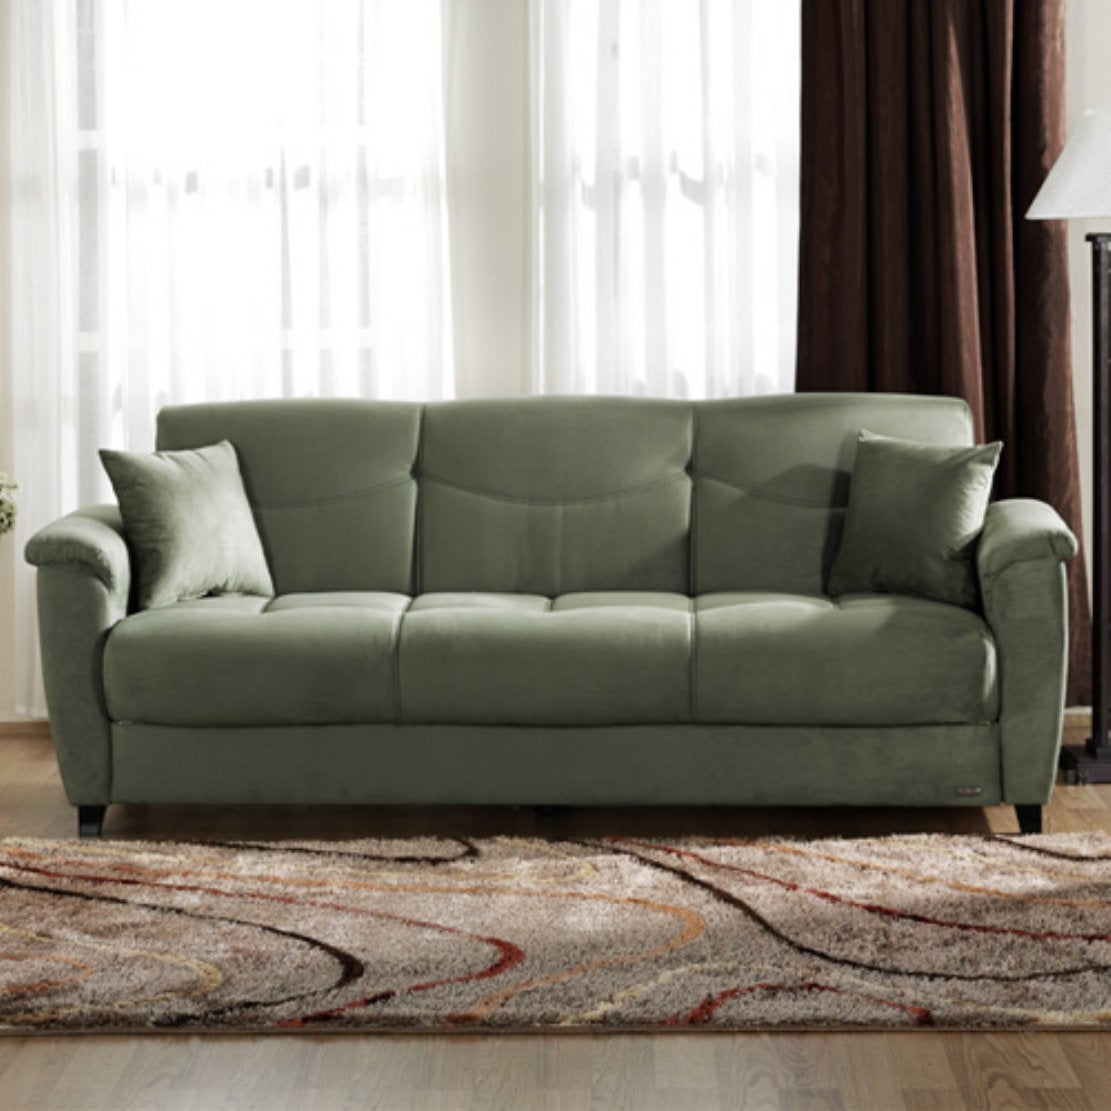 Sage Green Microfiber Couch Sofa Bed Sleeper with Hidden Storage